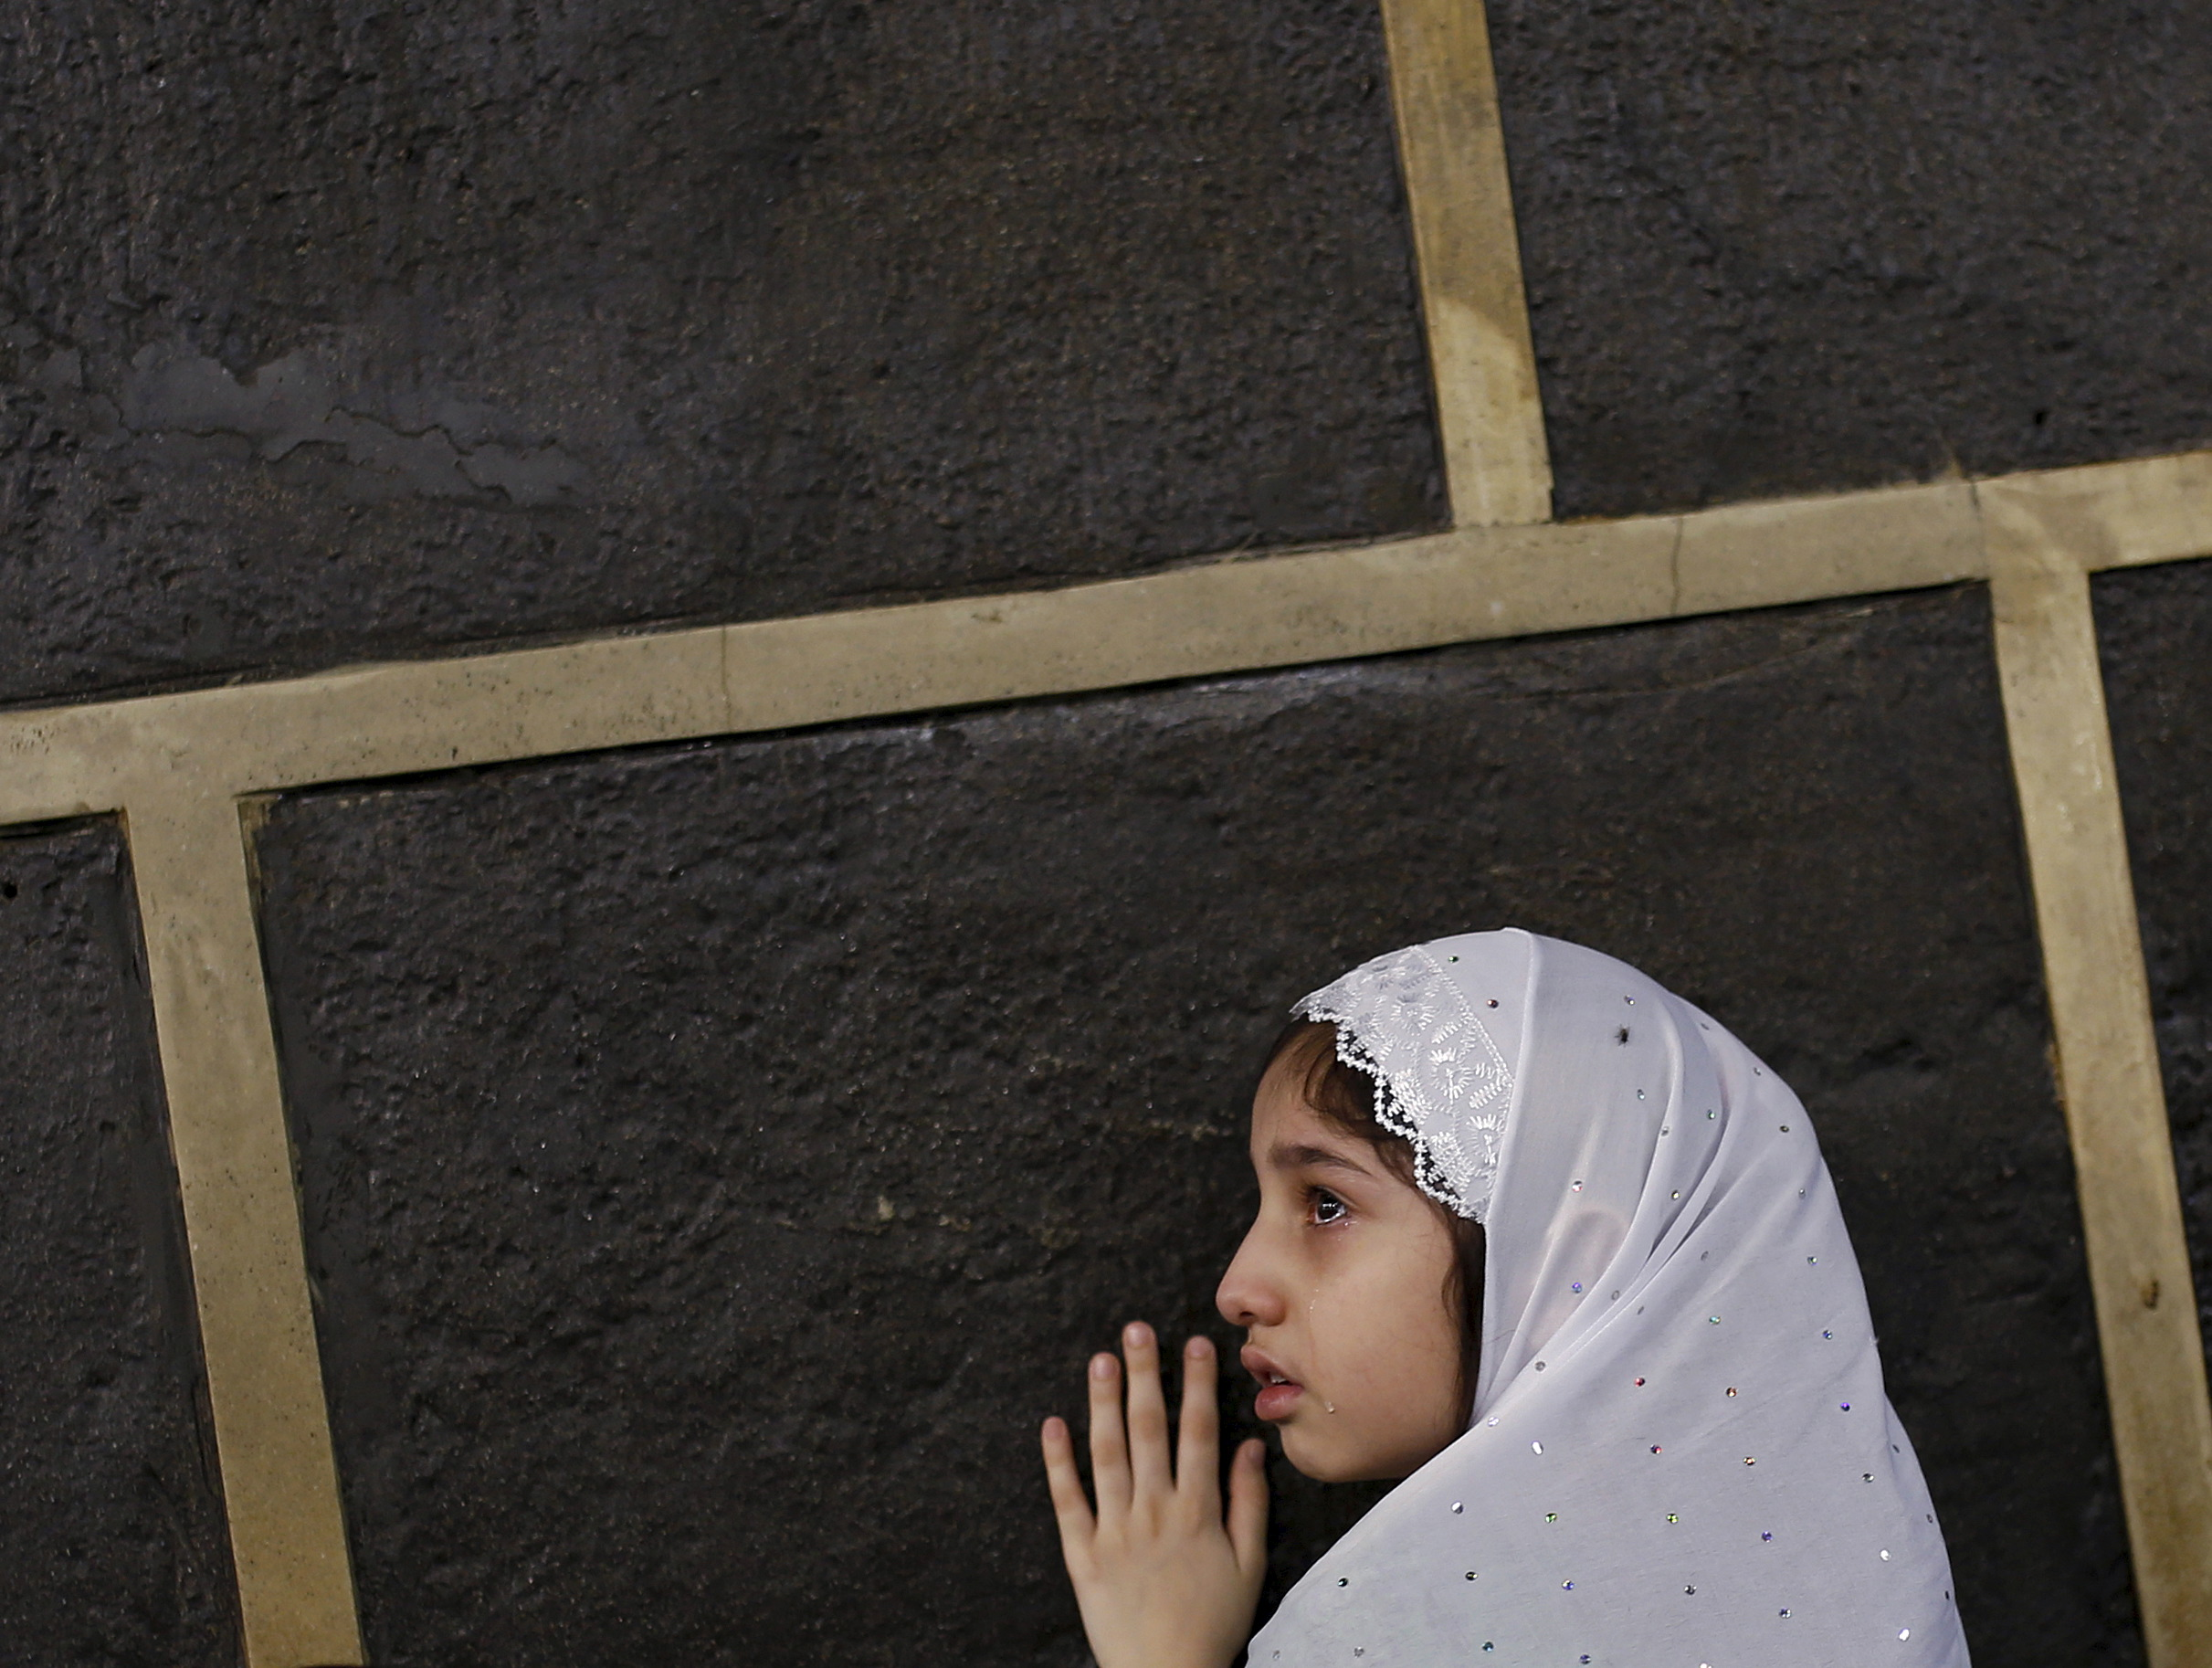 A Muslim girl touches the holy Kaaba at the Grand Mosque on the first day of Eid al-Adha  during the annual hajj pilgrimage in Mecca in Saudi Arabia on Sept. 24. Photo by Ahmad Masood/Reuters